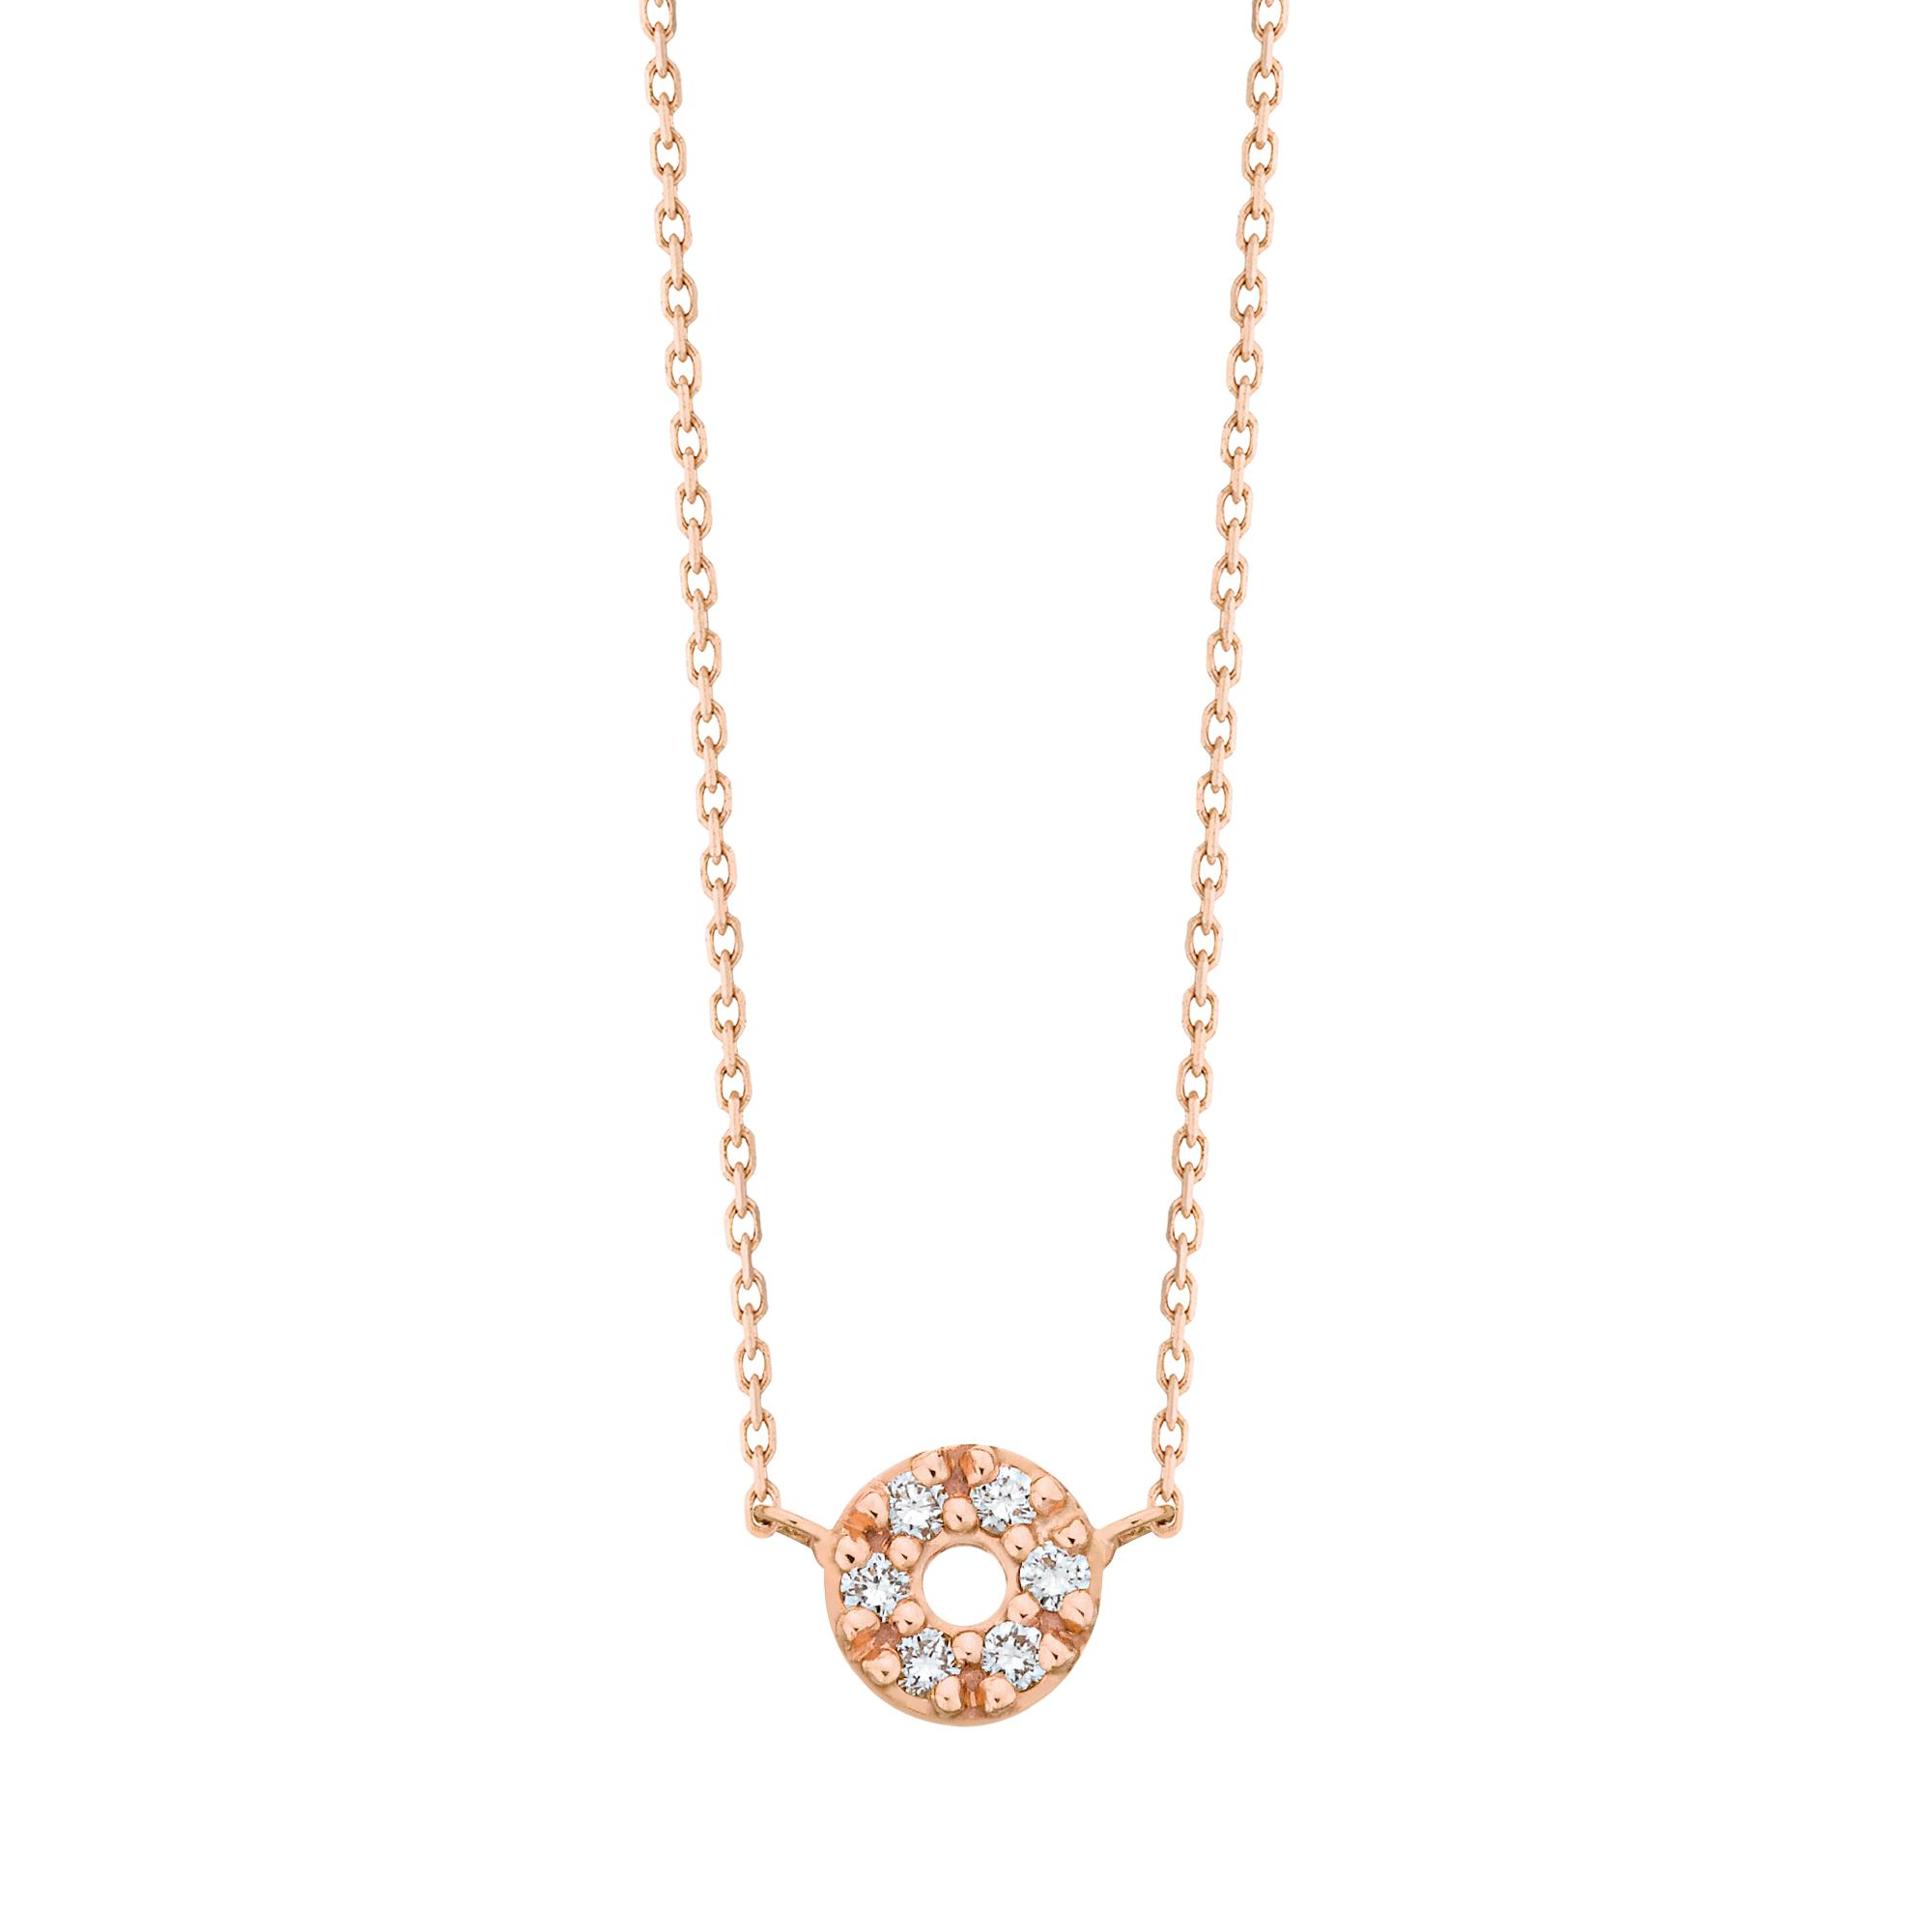 Exclusive - necklace Im In Love 750 gold and diamonds Vanrycke MPzPFGTF6